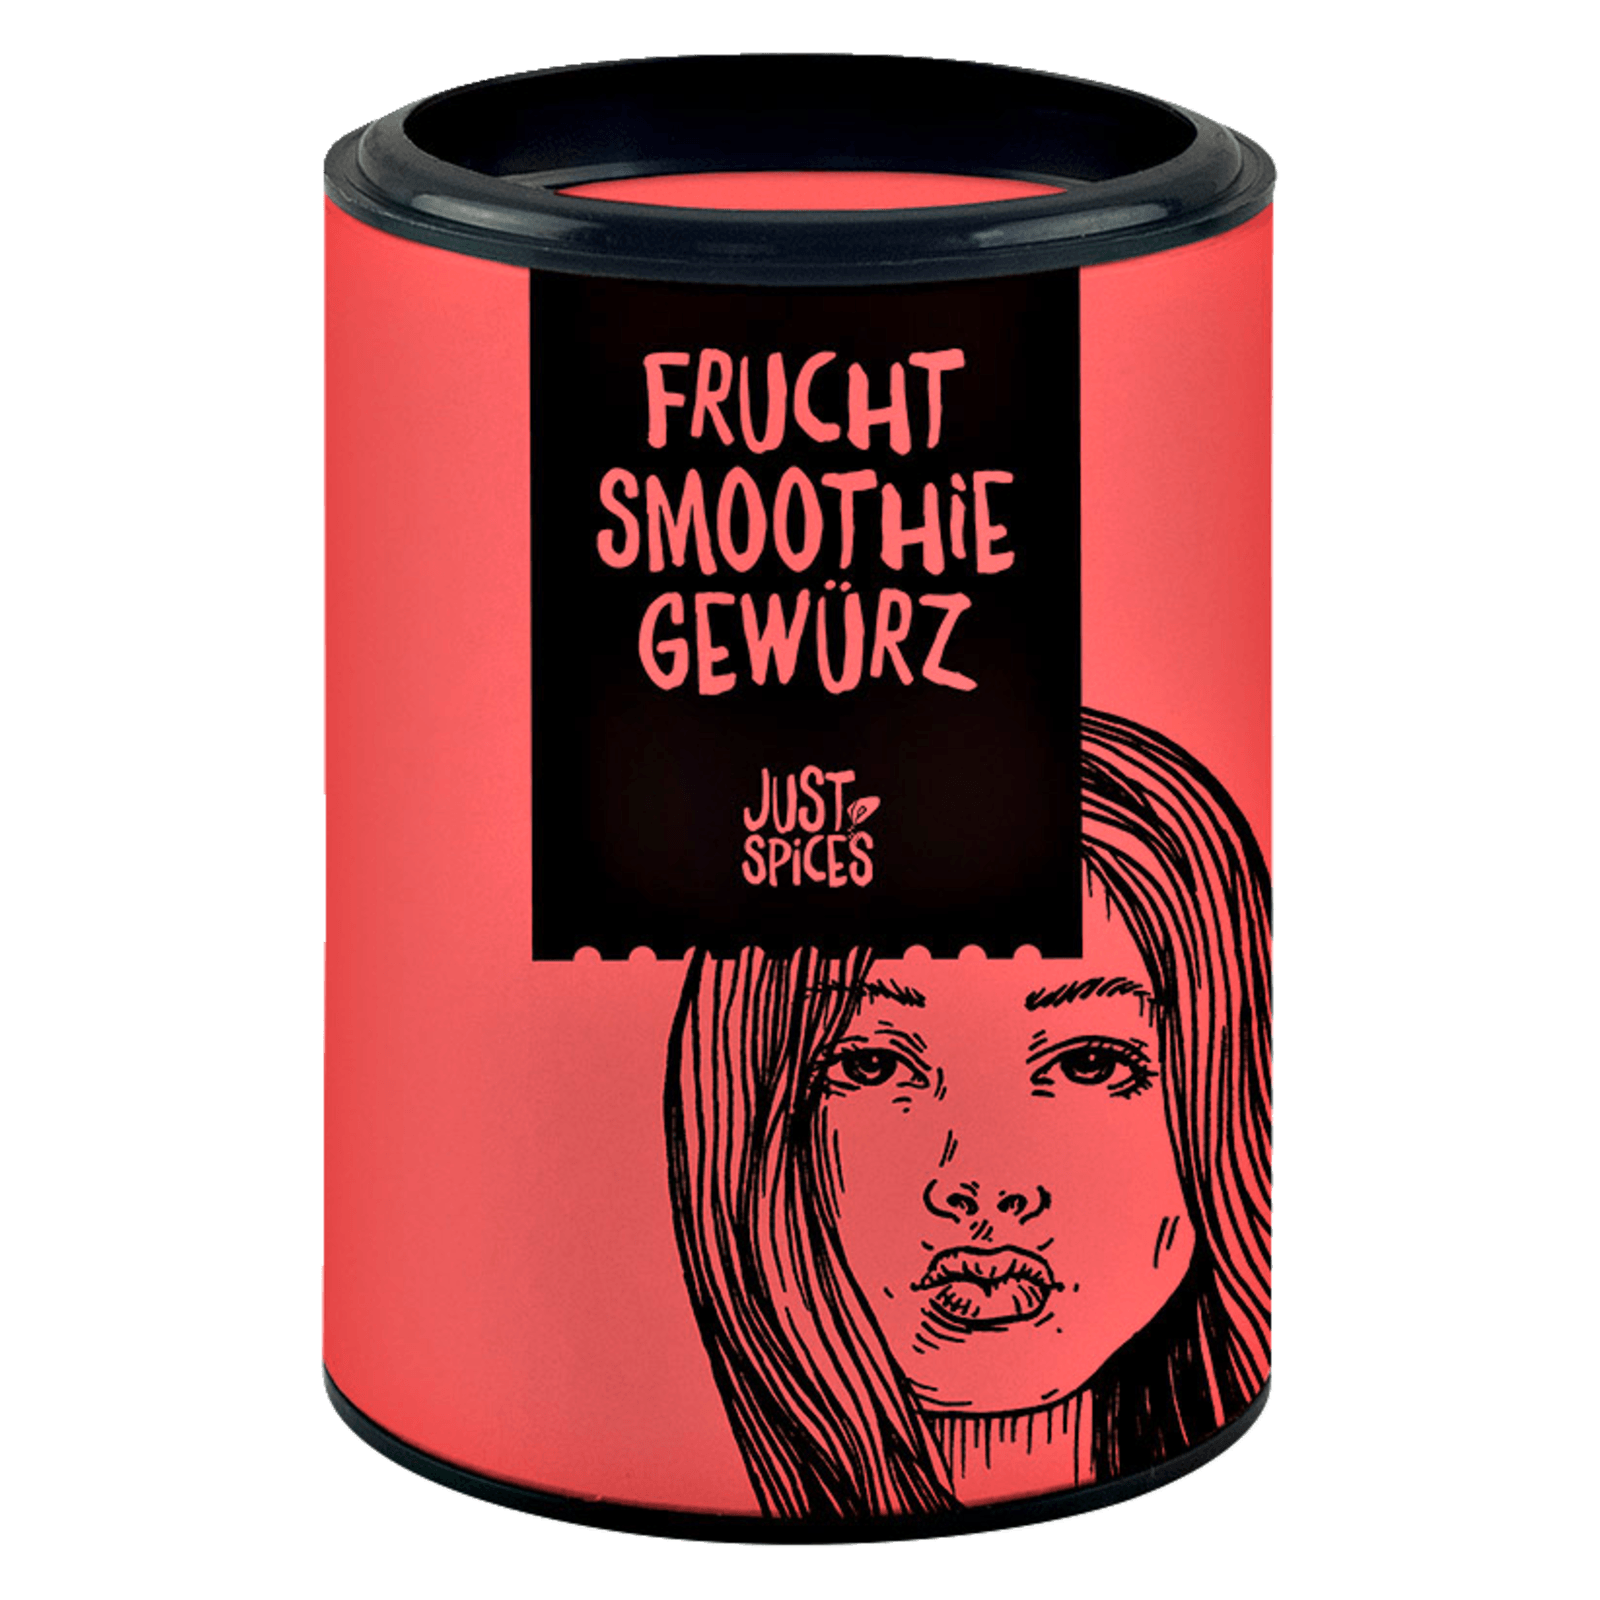 Just Spices Frucht Smoothie Gewürz 56g